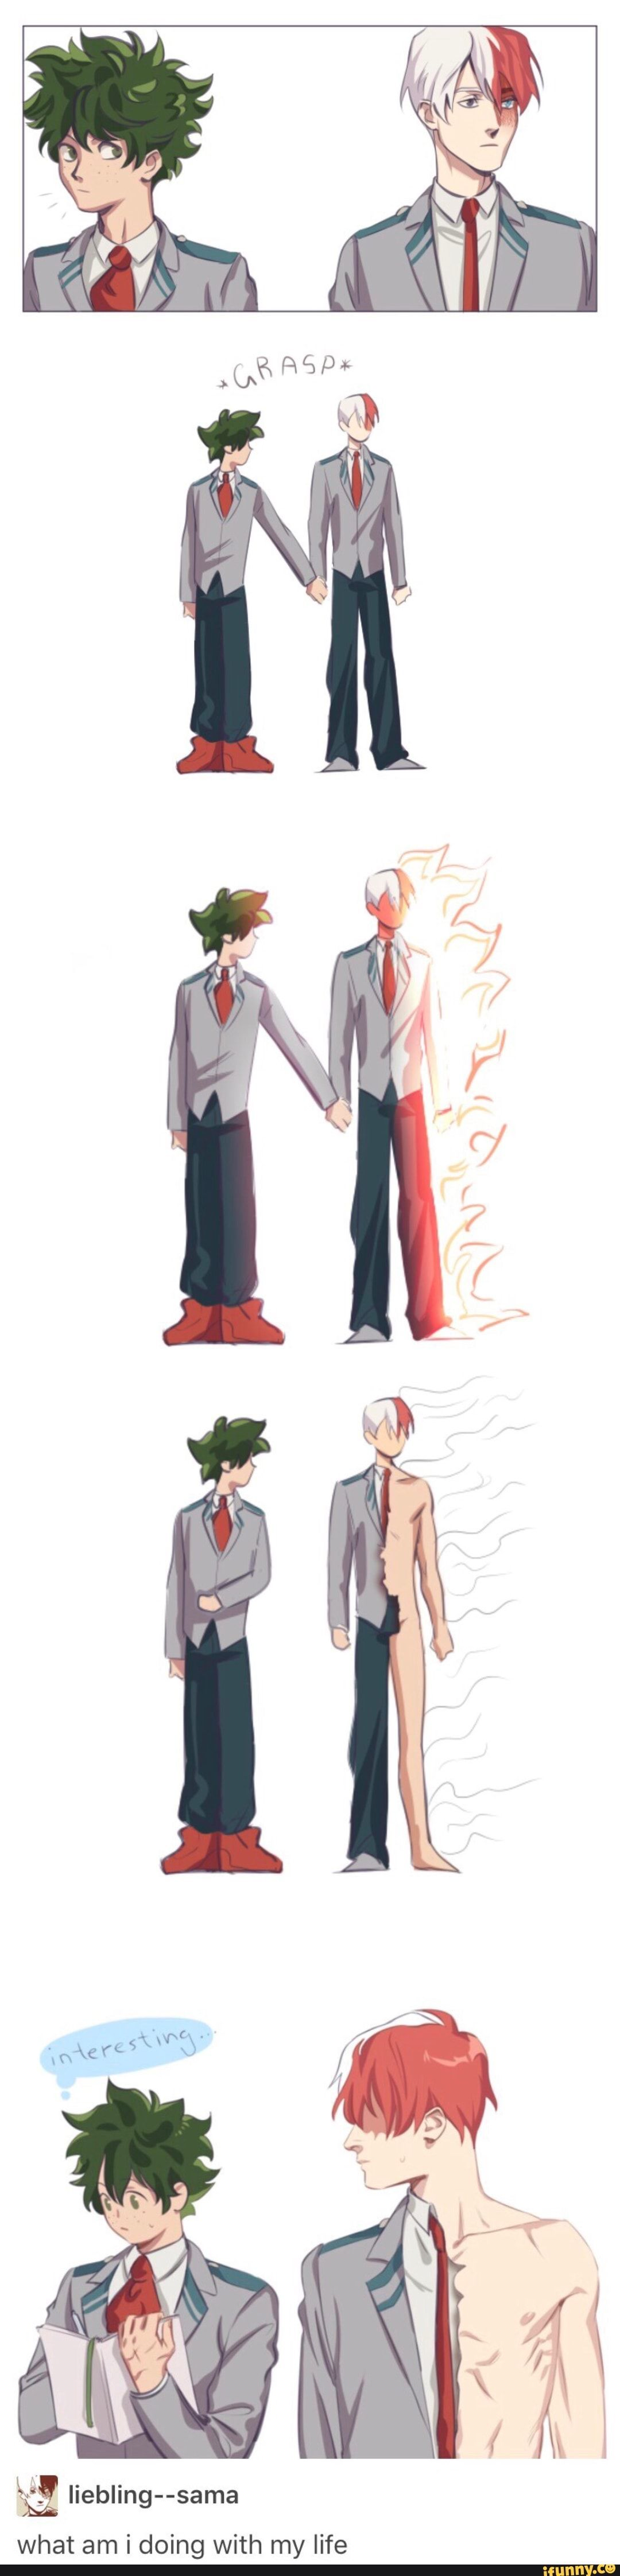 That S So Embarrassing But Cute At The Same Time Todoroki With